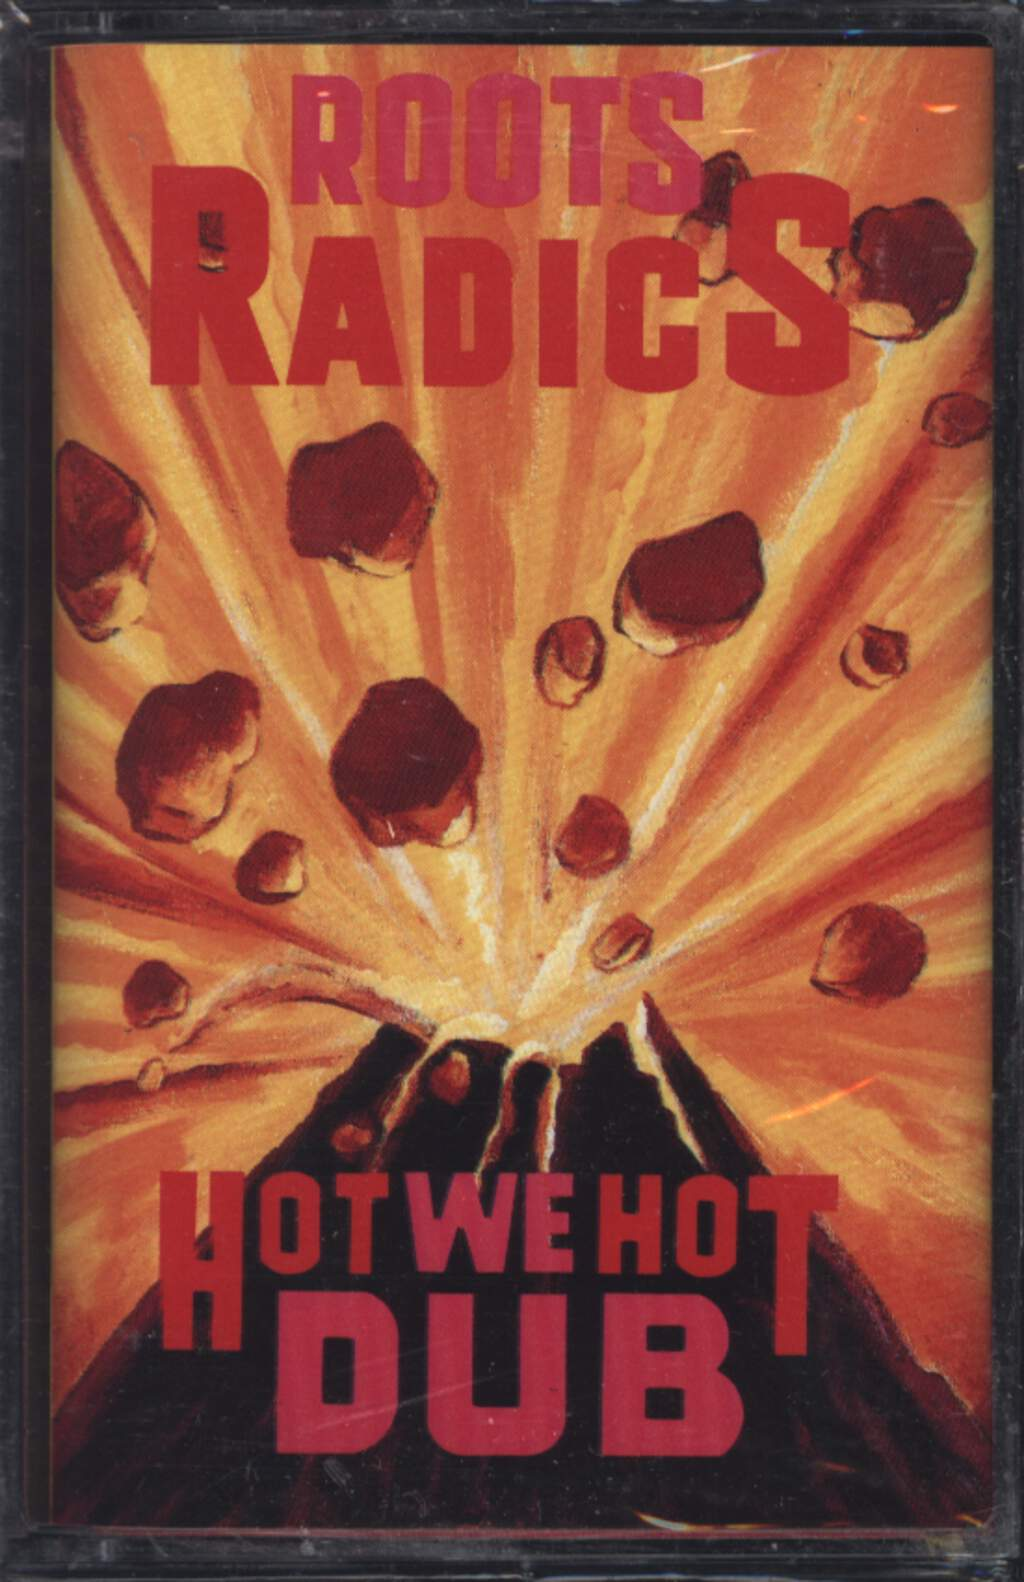 The Roots Radics: Hot We Hot Dub, Compact Cassette